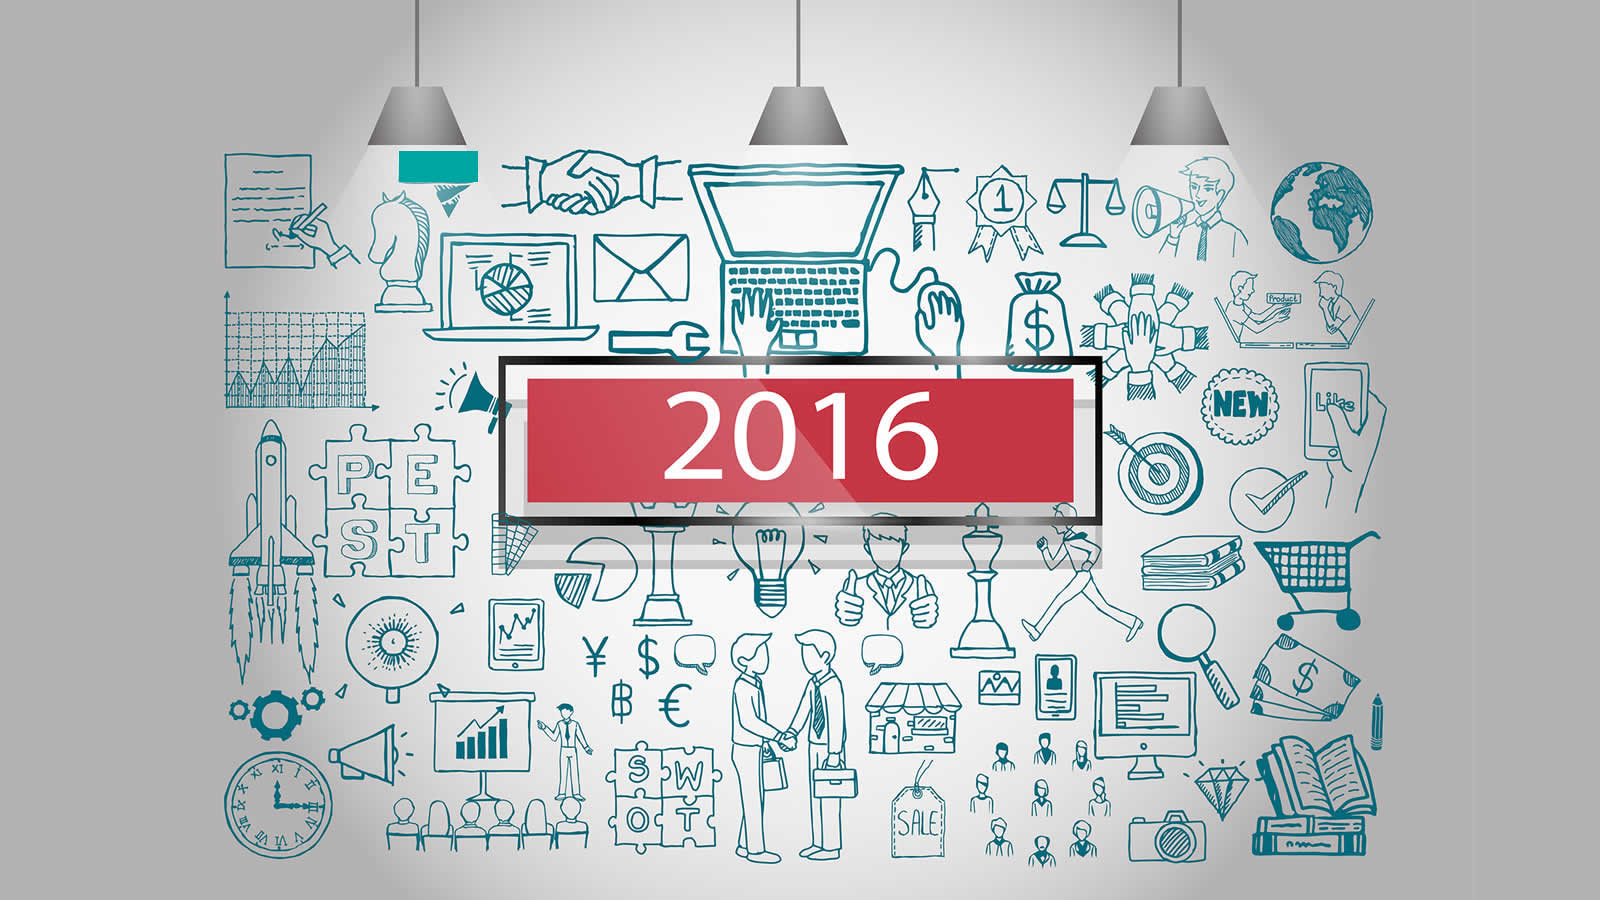 Ed Tech Trends 2016 | Online Learning Insights